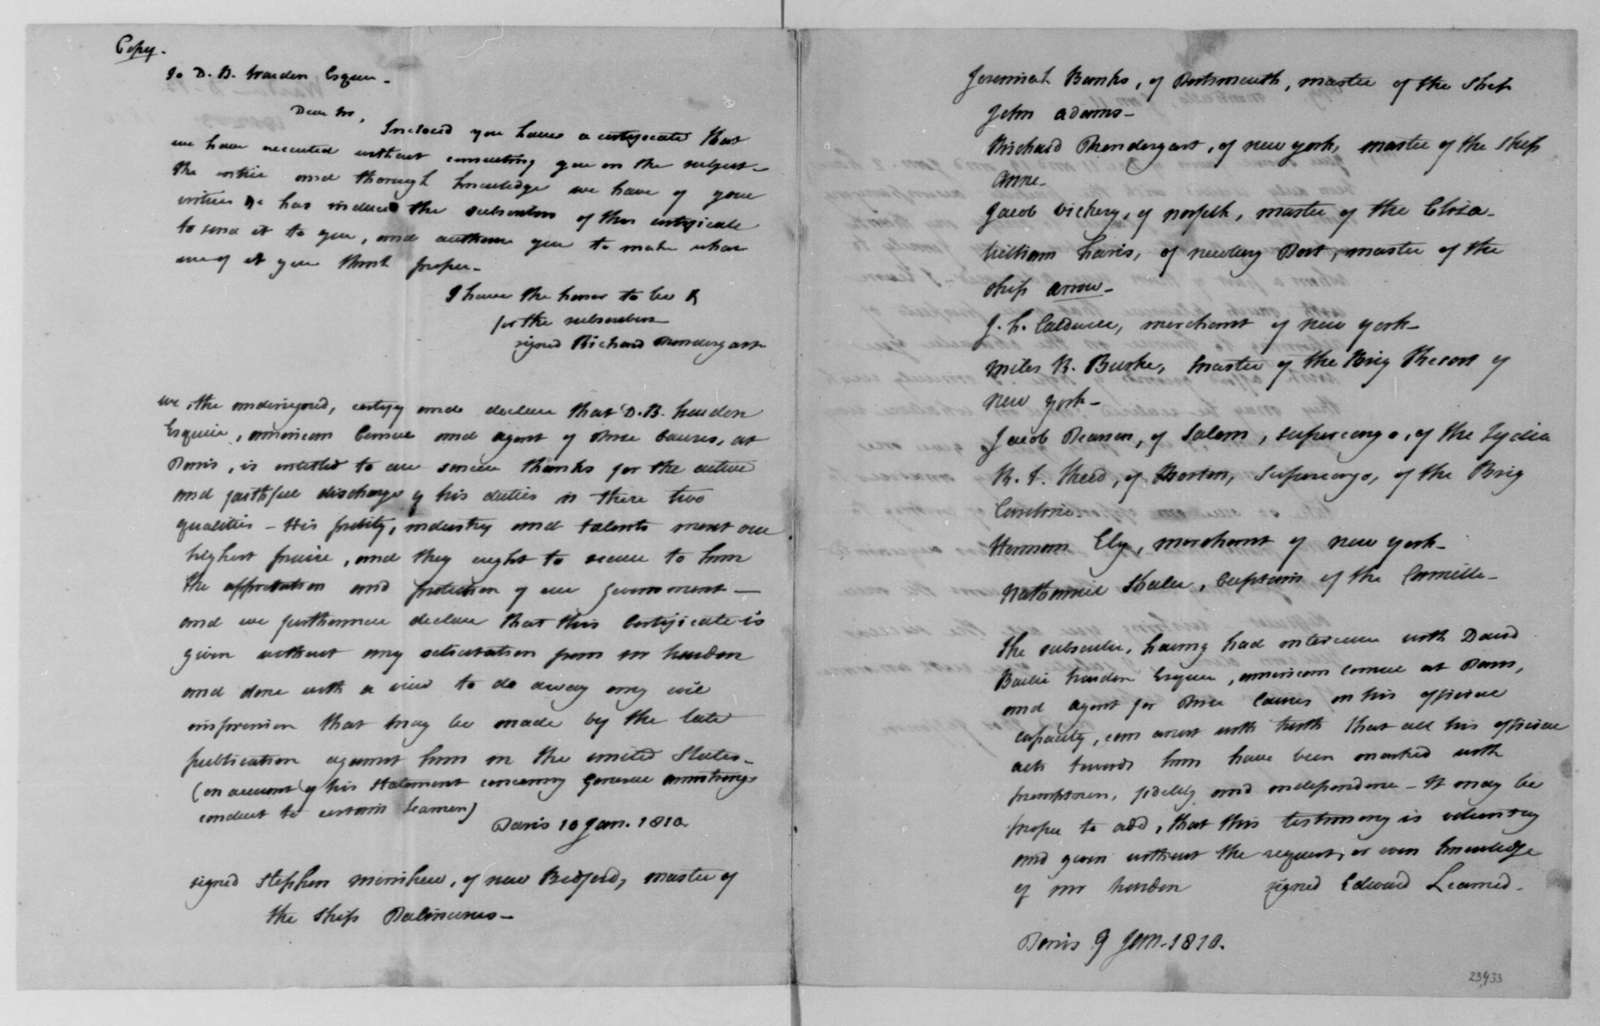 David Bailie Warden to James Madison, April 23, 1811. With nine documents in evidence.